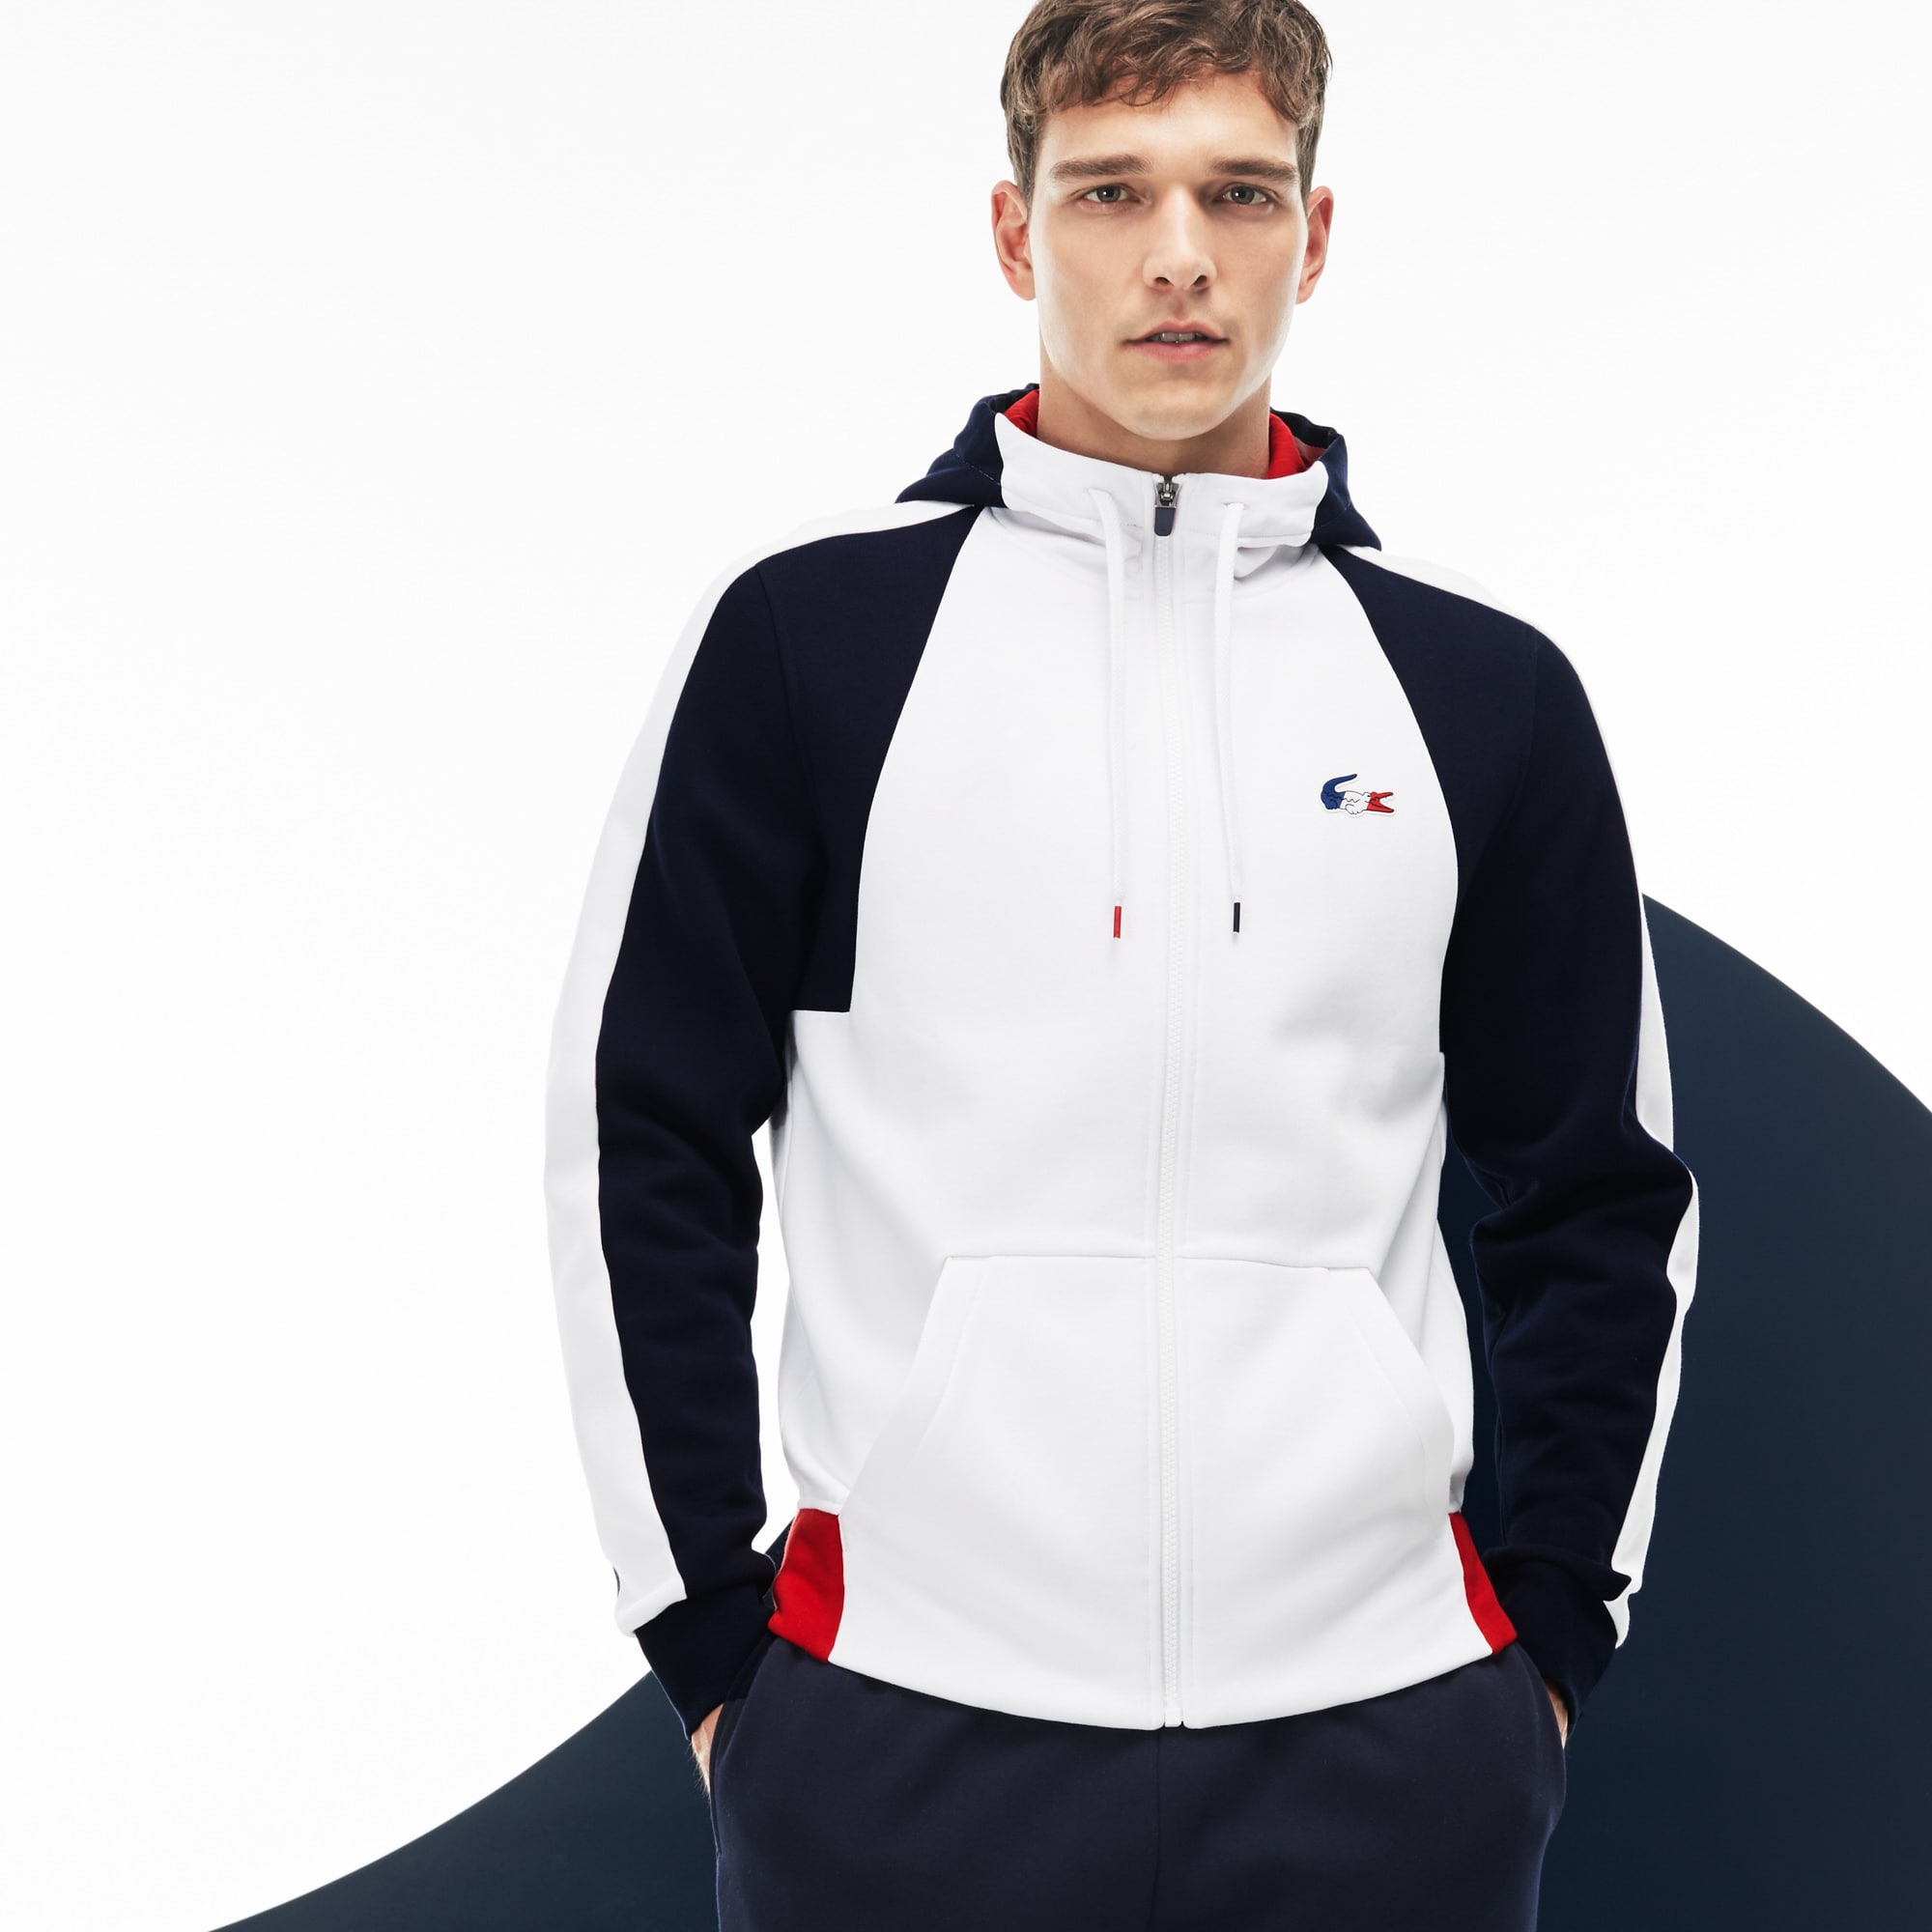 Men's Lacoste FRENCH SPORTING SPIRIT Edition Colorblock Fleece Sweatshirt